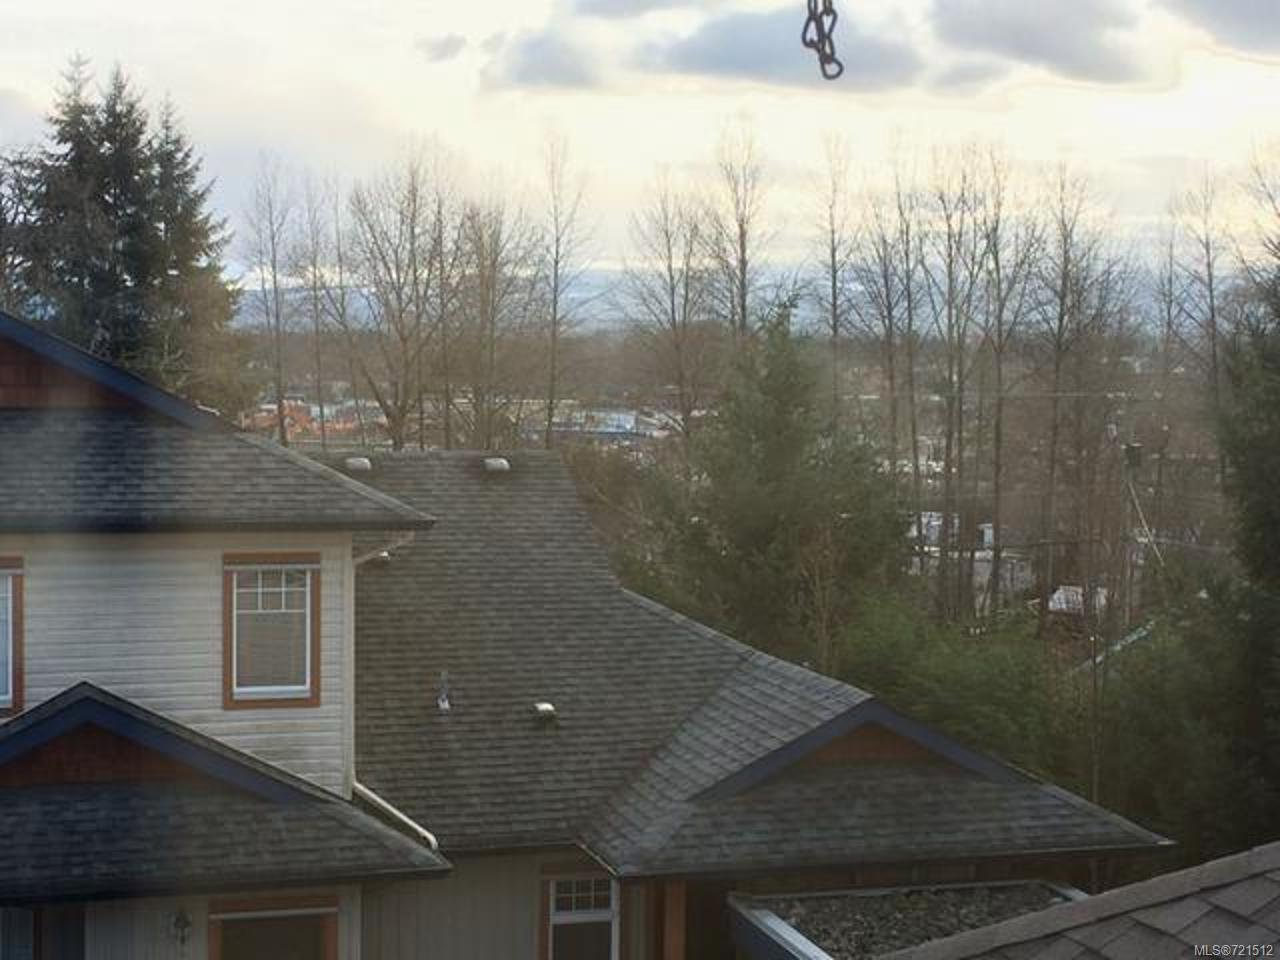 Main Photo: 321 930 BRAIDWOOD ROAD in COURTENAY: CV Courtenay East Row/Townhouse for sale (Comox Valley)  : MLS®# 721512